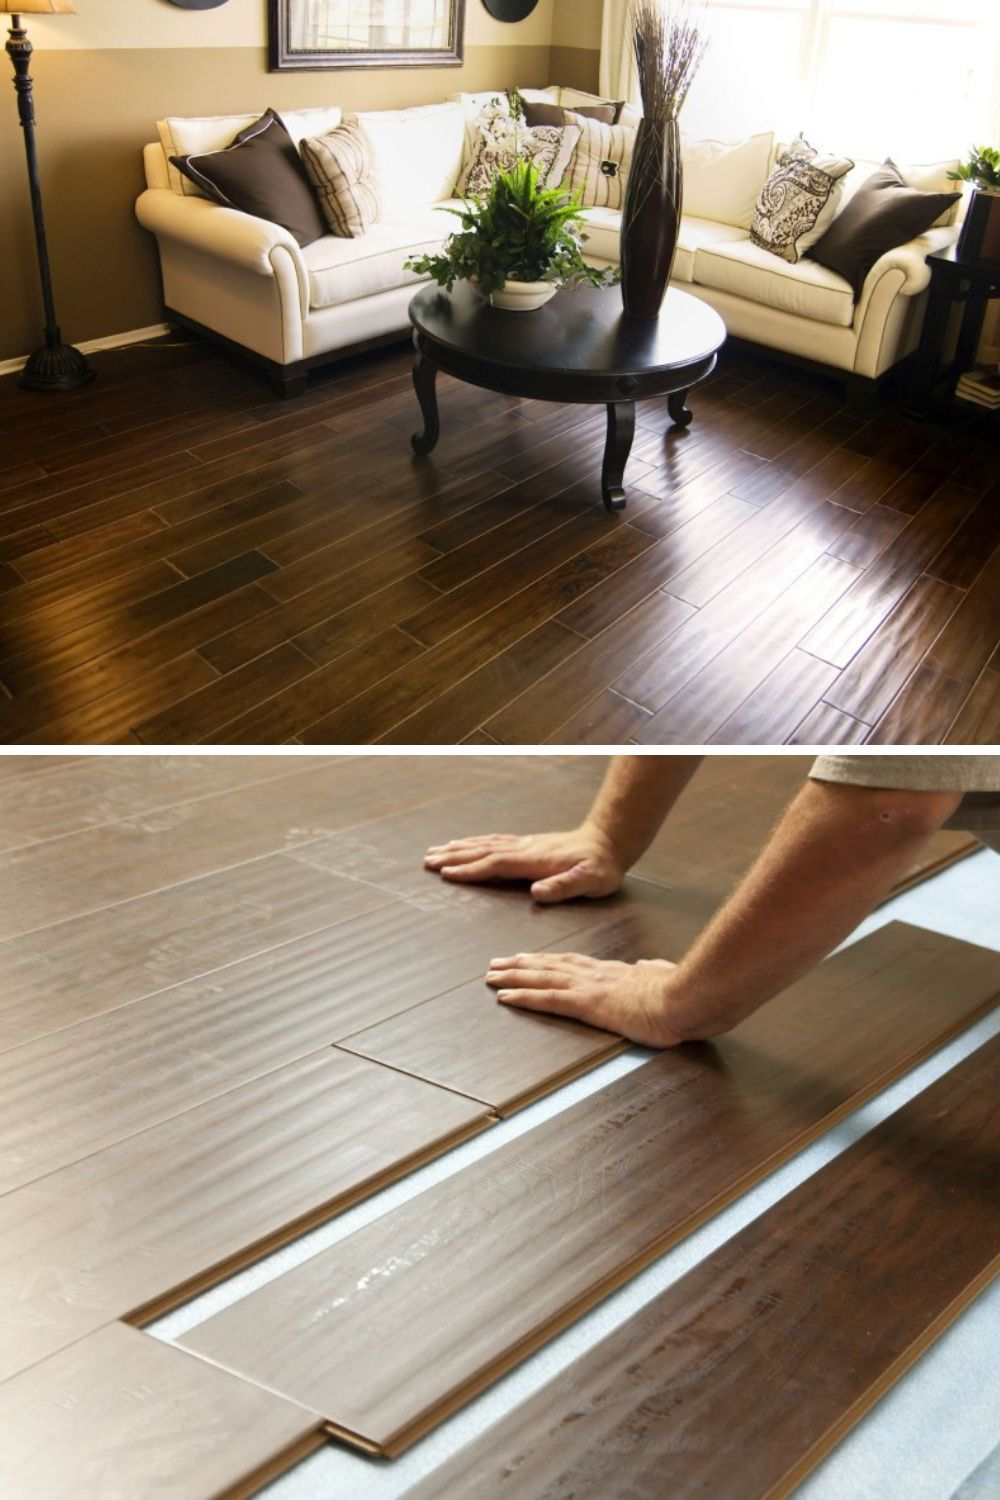 Vinyl Plank Flooring Vs Wood Look Tile Which Is Best For You Builddirect Learning Center Wood Look Tile Vinyl Plank Flooring Vinyl Plank